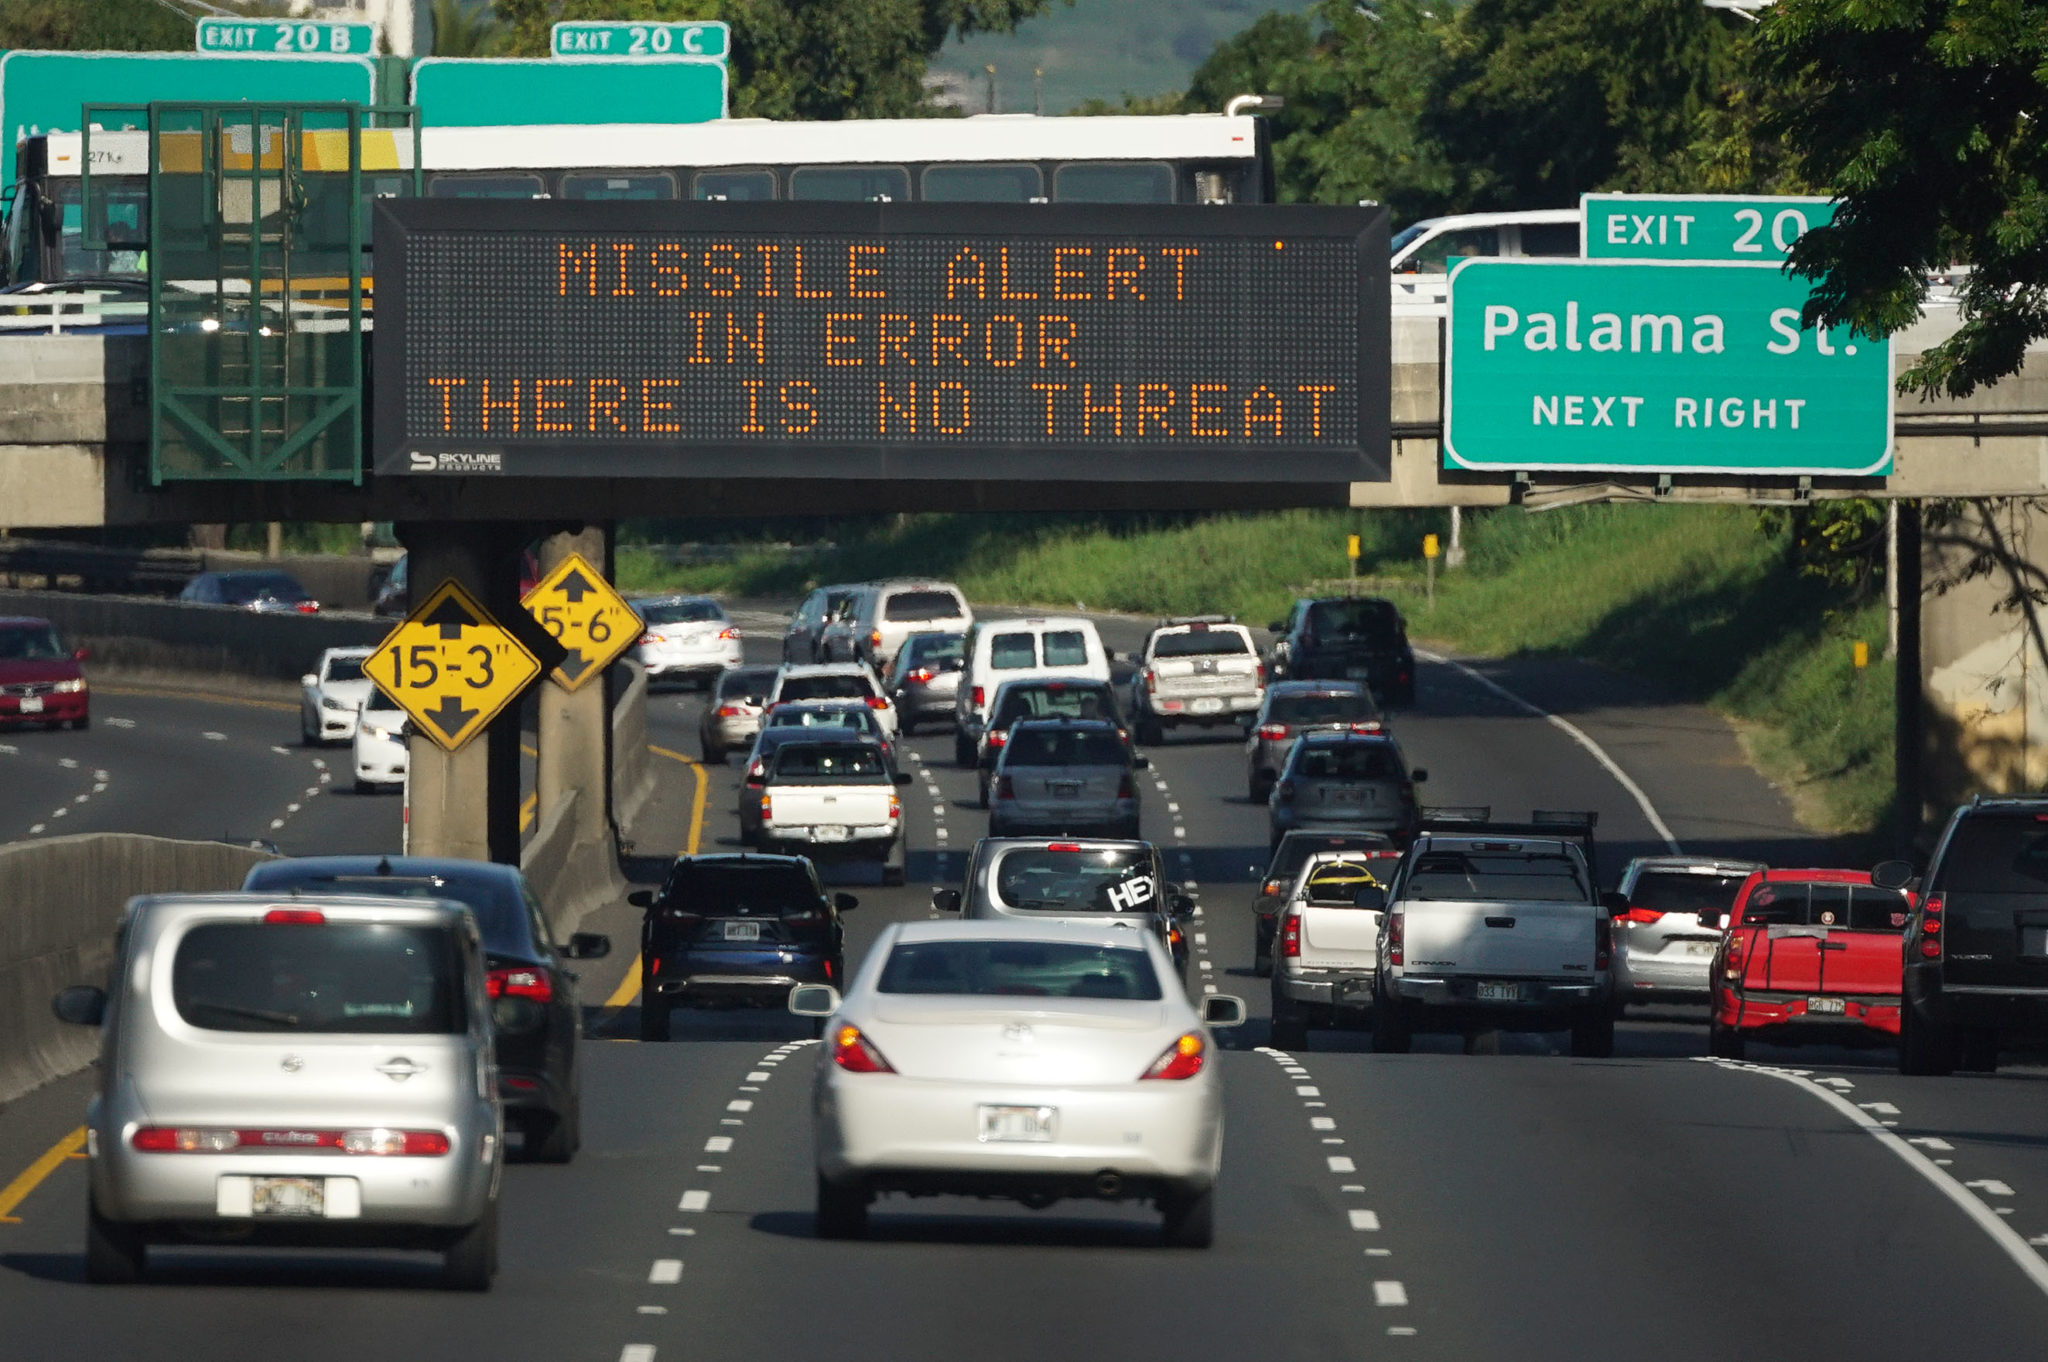 "<p><strong>DOOMSDAY:</strong> It took 38 long minutes for the all-clear to be sounded after a Jan. 13 cellphone alert warned of incoming ballistic missiles and added, ""THIS IS NOT A DRILL."" Thousands of people assumed the worst. / Cory Lum</p>"